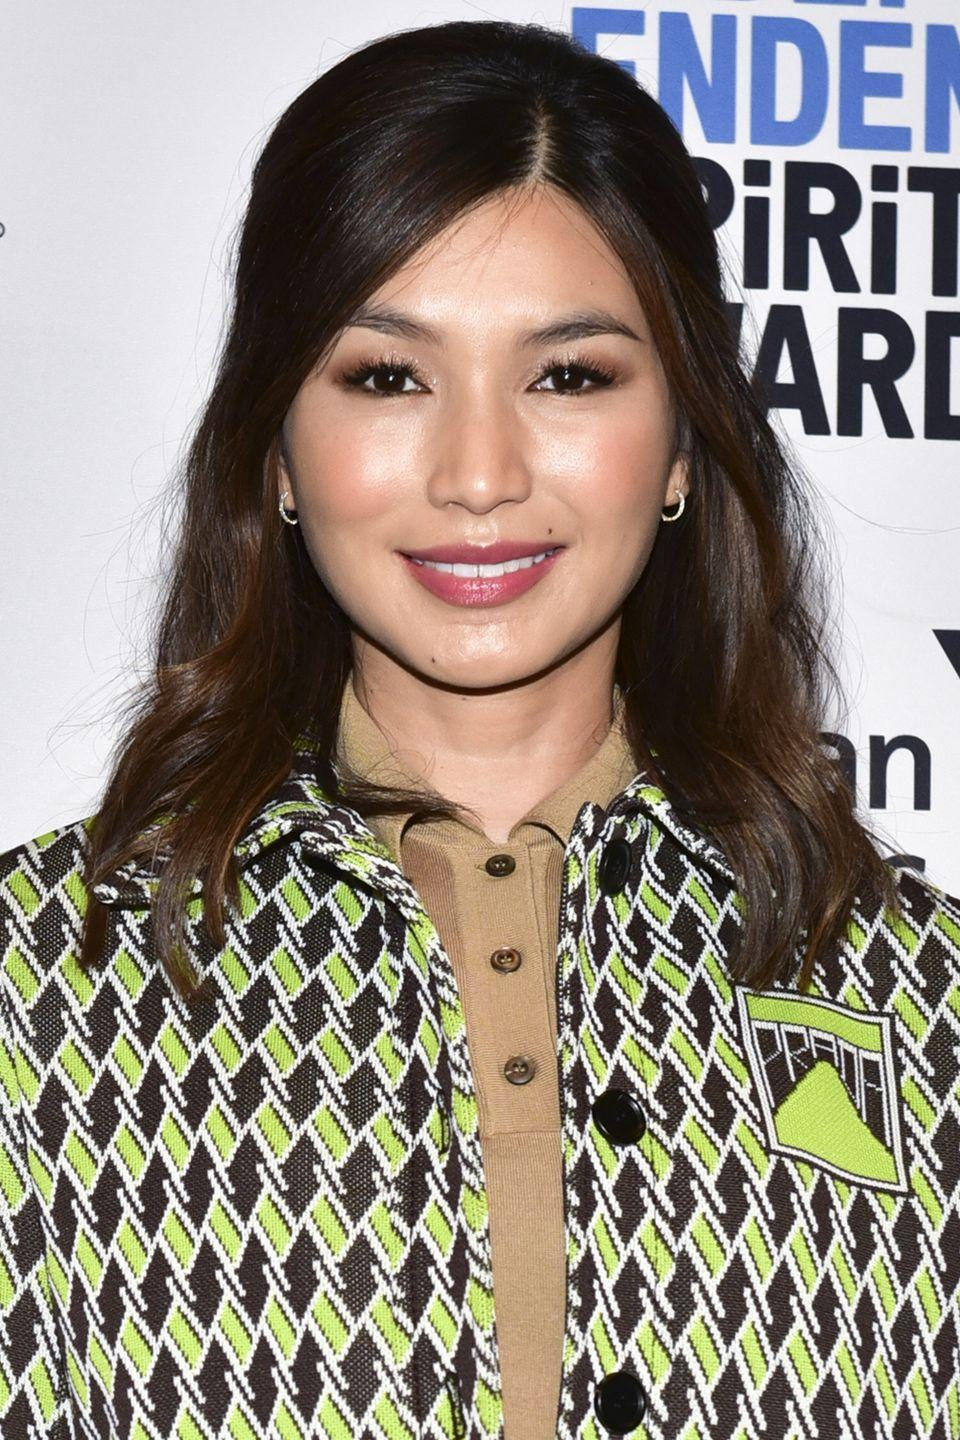 <p>For medium hair length, follow Gemma Chan's lead and part hair to the side before gathering some layers for a half-up, half-down style. Subtle waves give the style both volume and hold.</p>